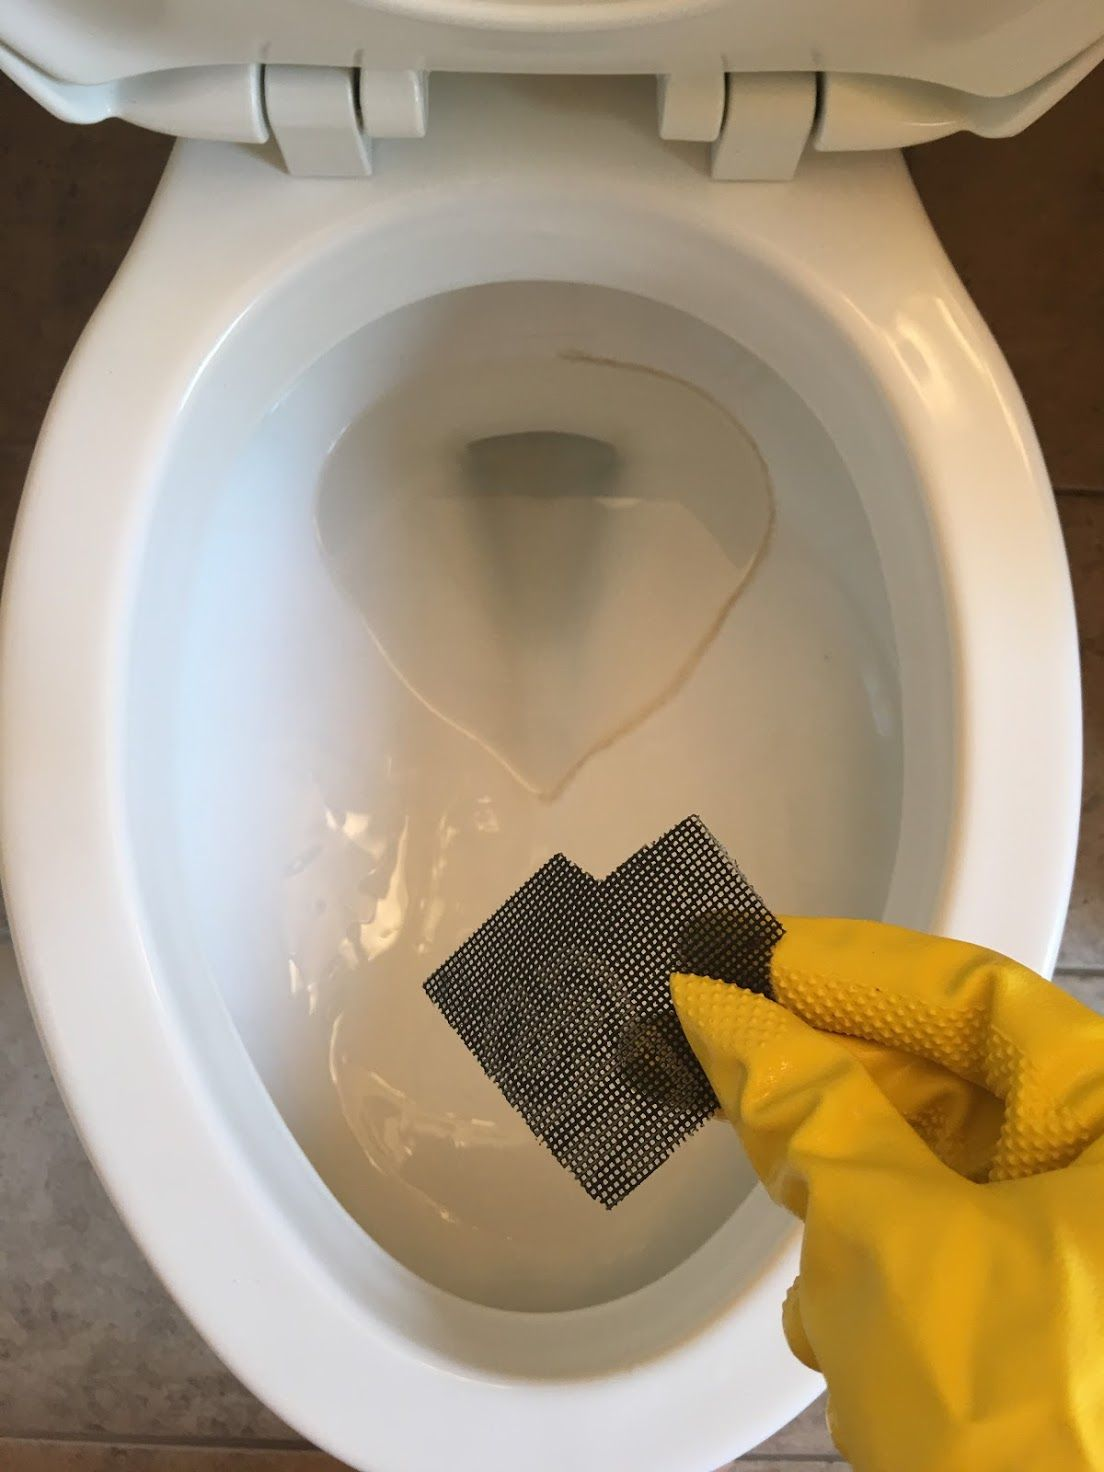 8bacd3e44df086404c82a9a8f389c132 - How To Get Hard Water Stains Off Of Toilet